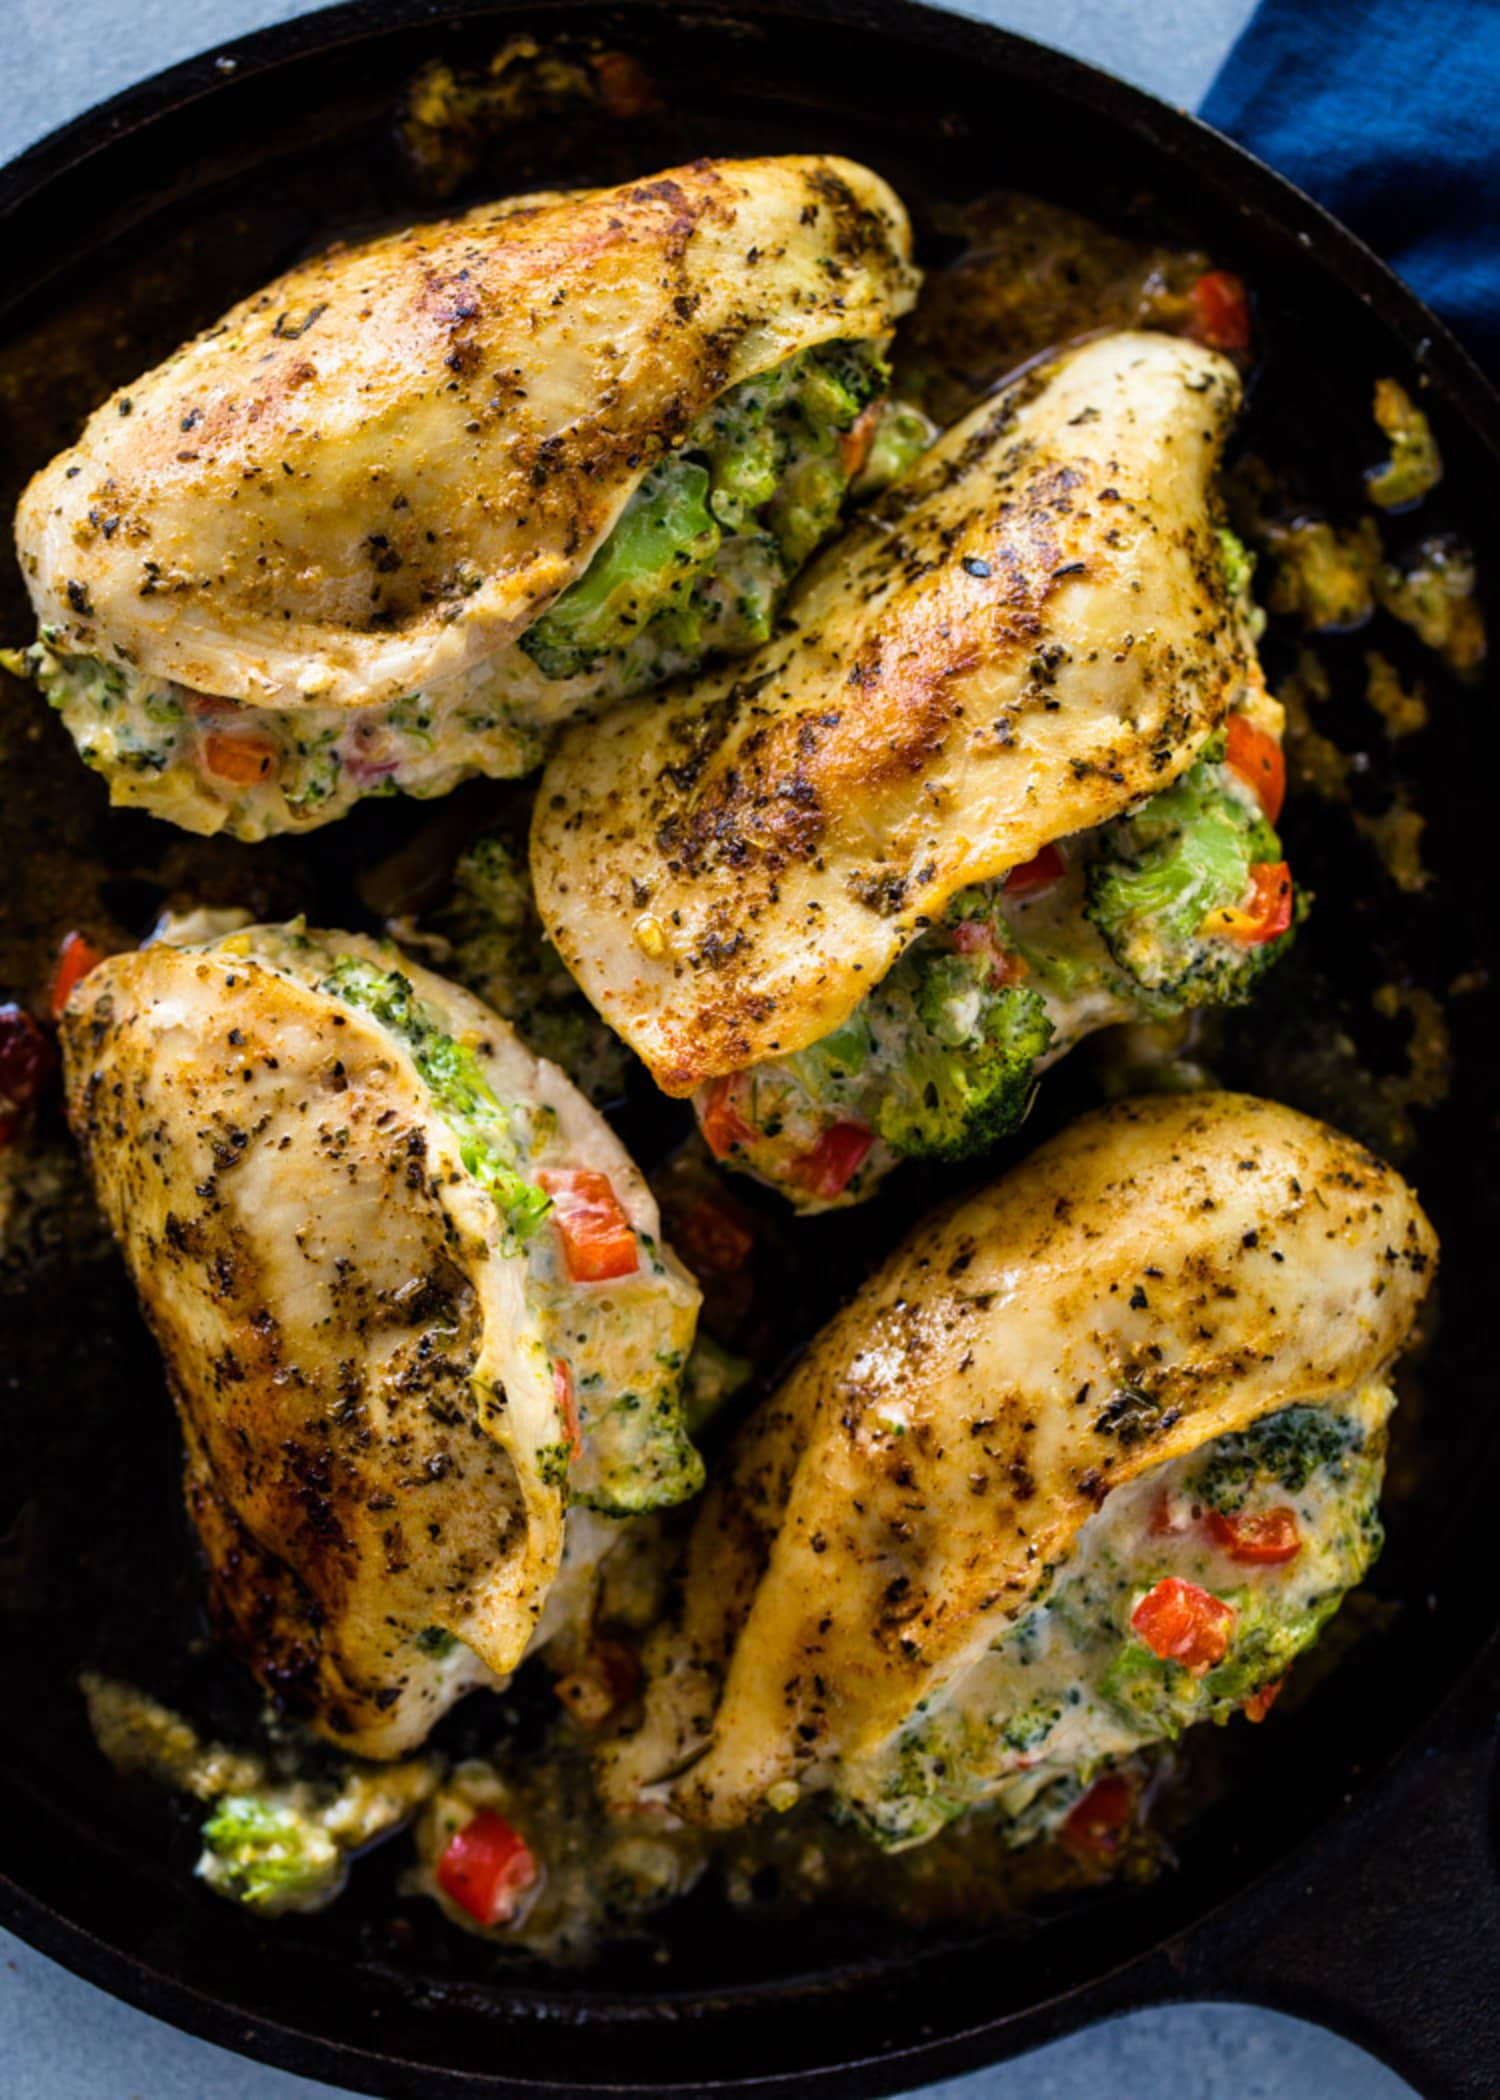 Cheesy Broccoli-Stuffed Chicken Is a Dinner Favorite